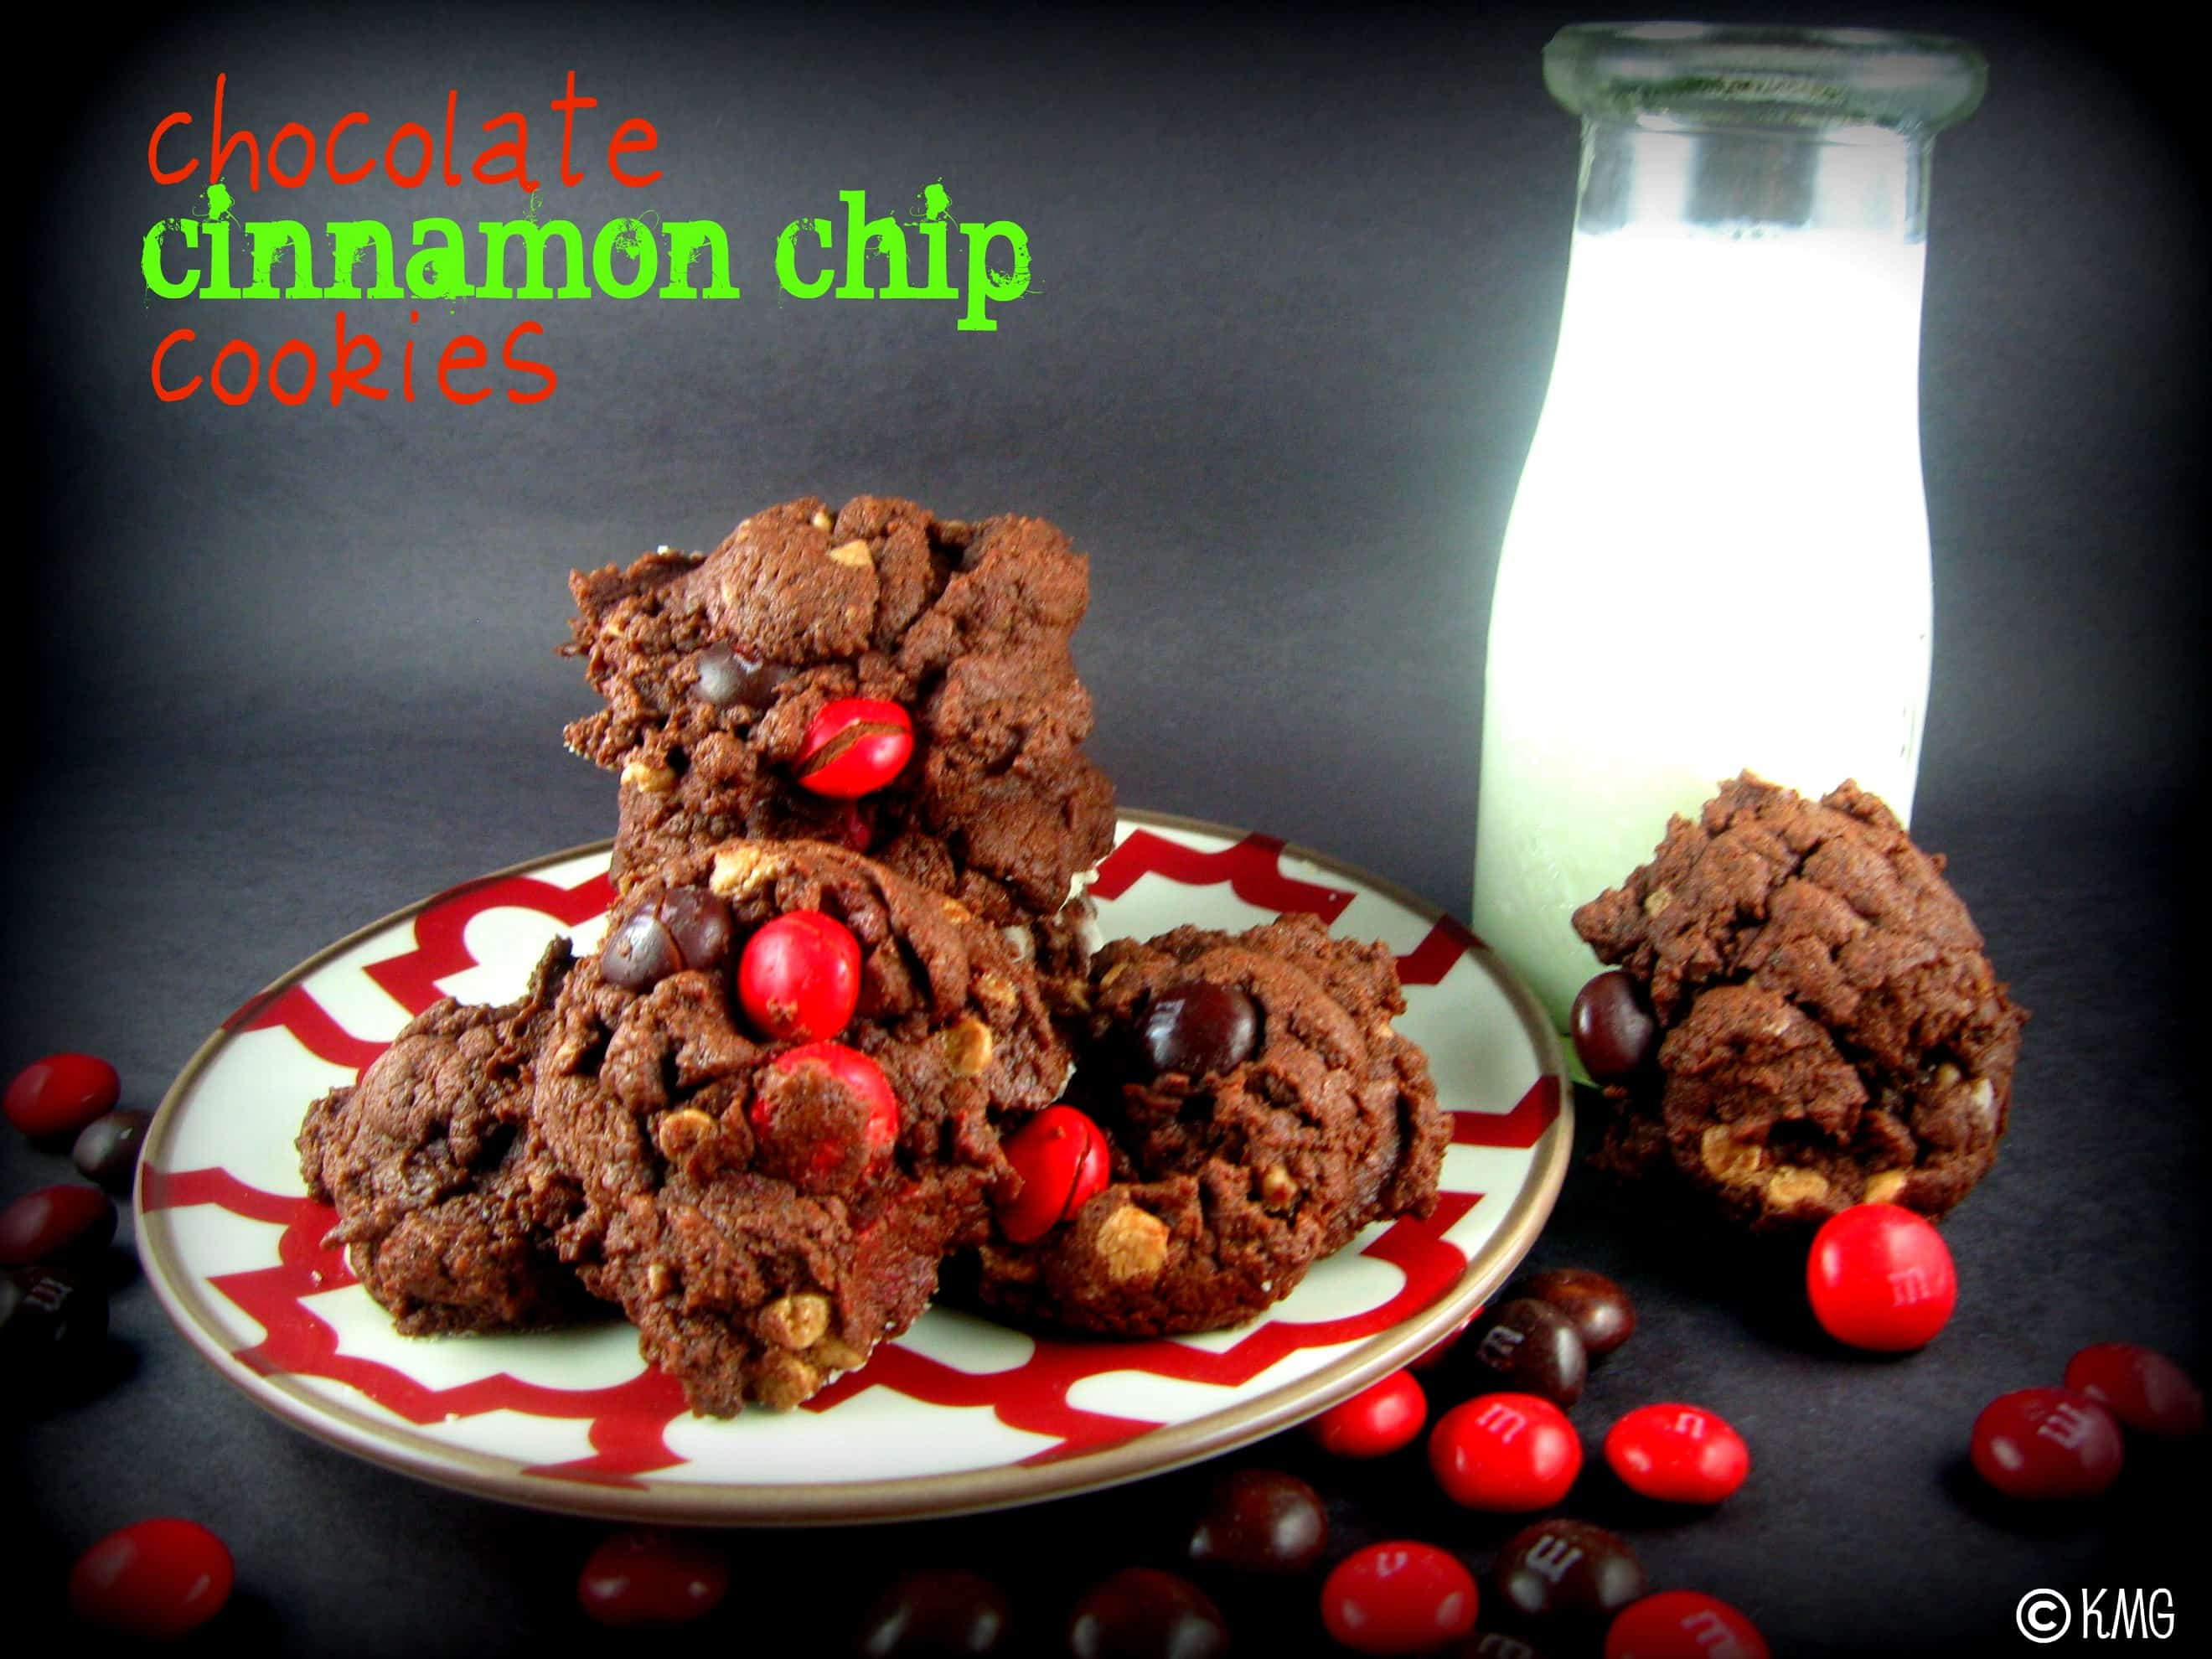 Chocolate Cinnamon Chip Cookies